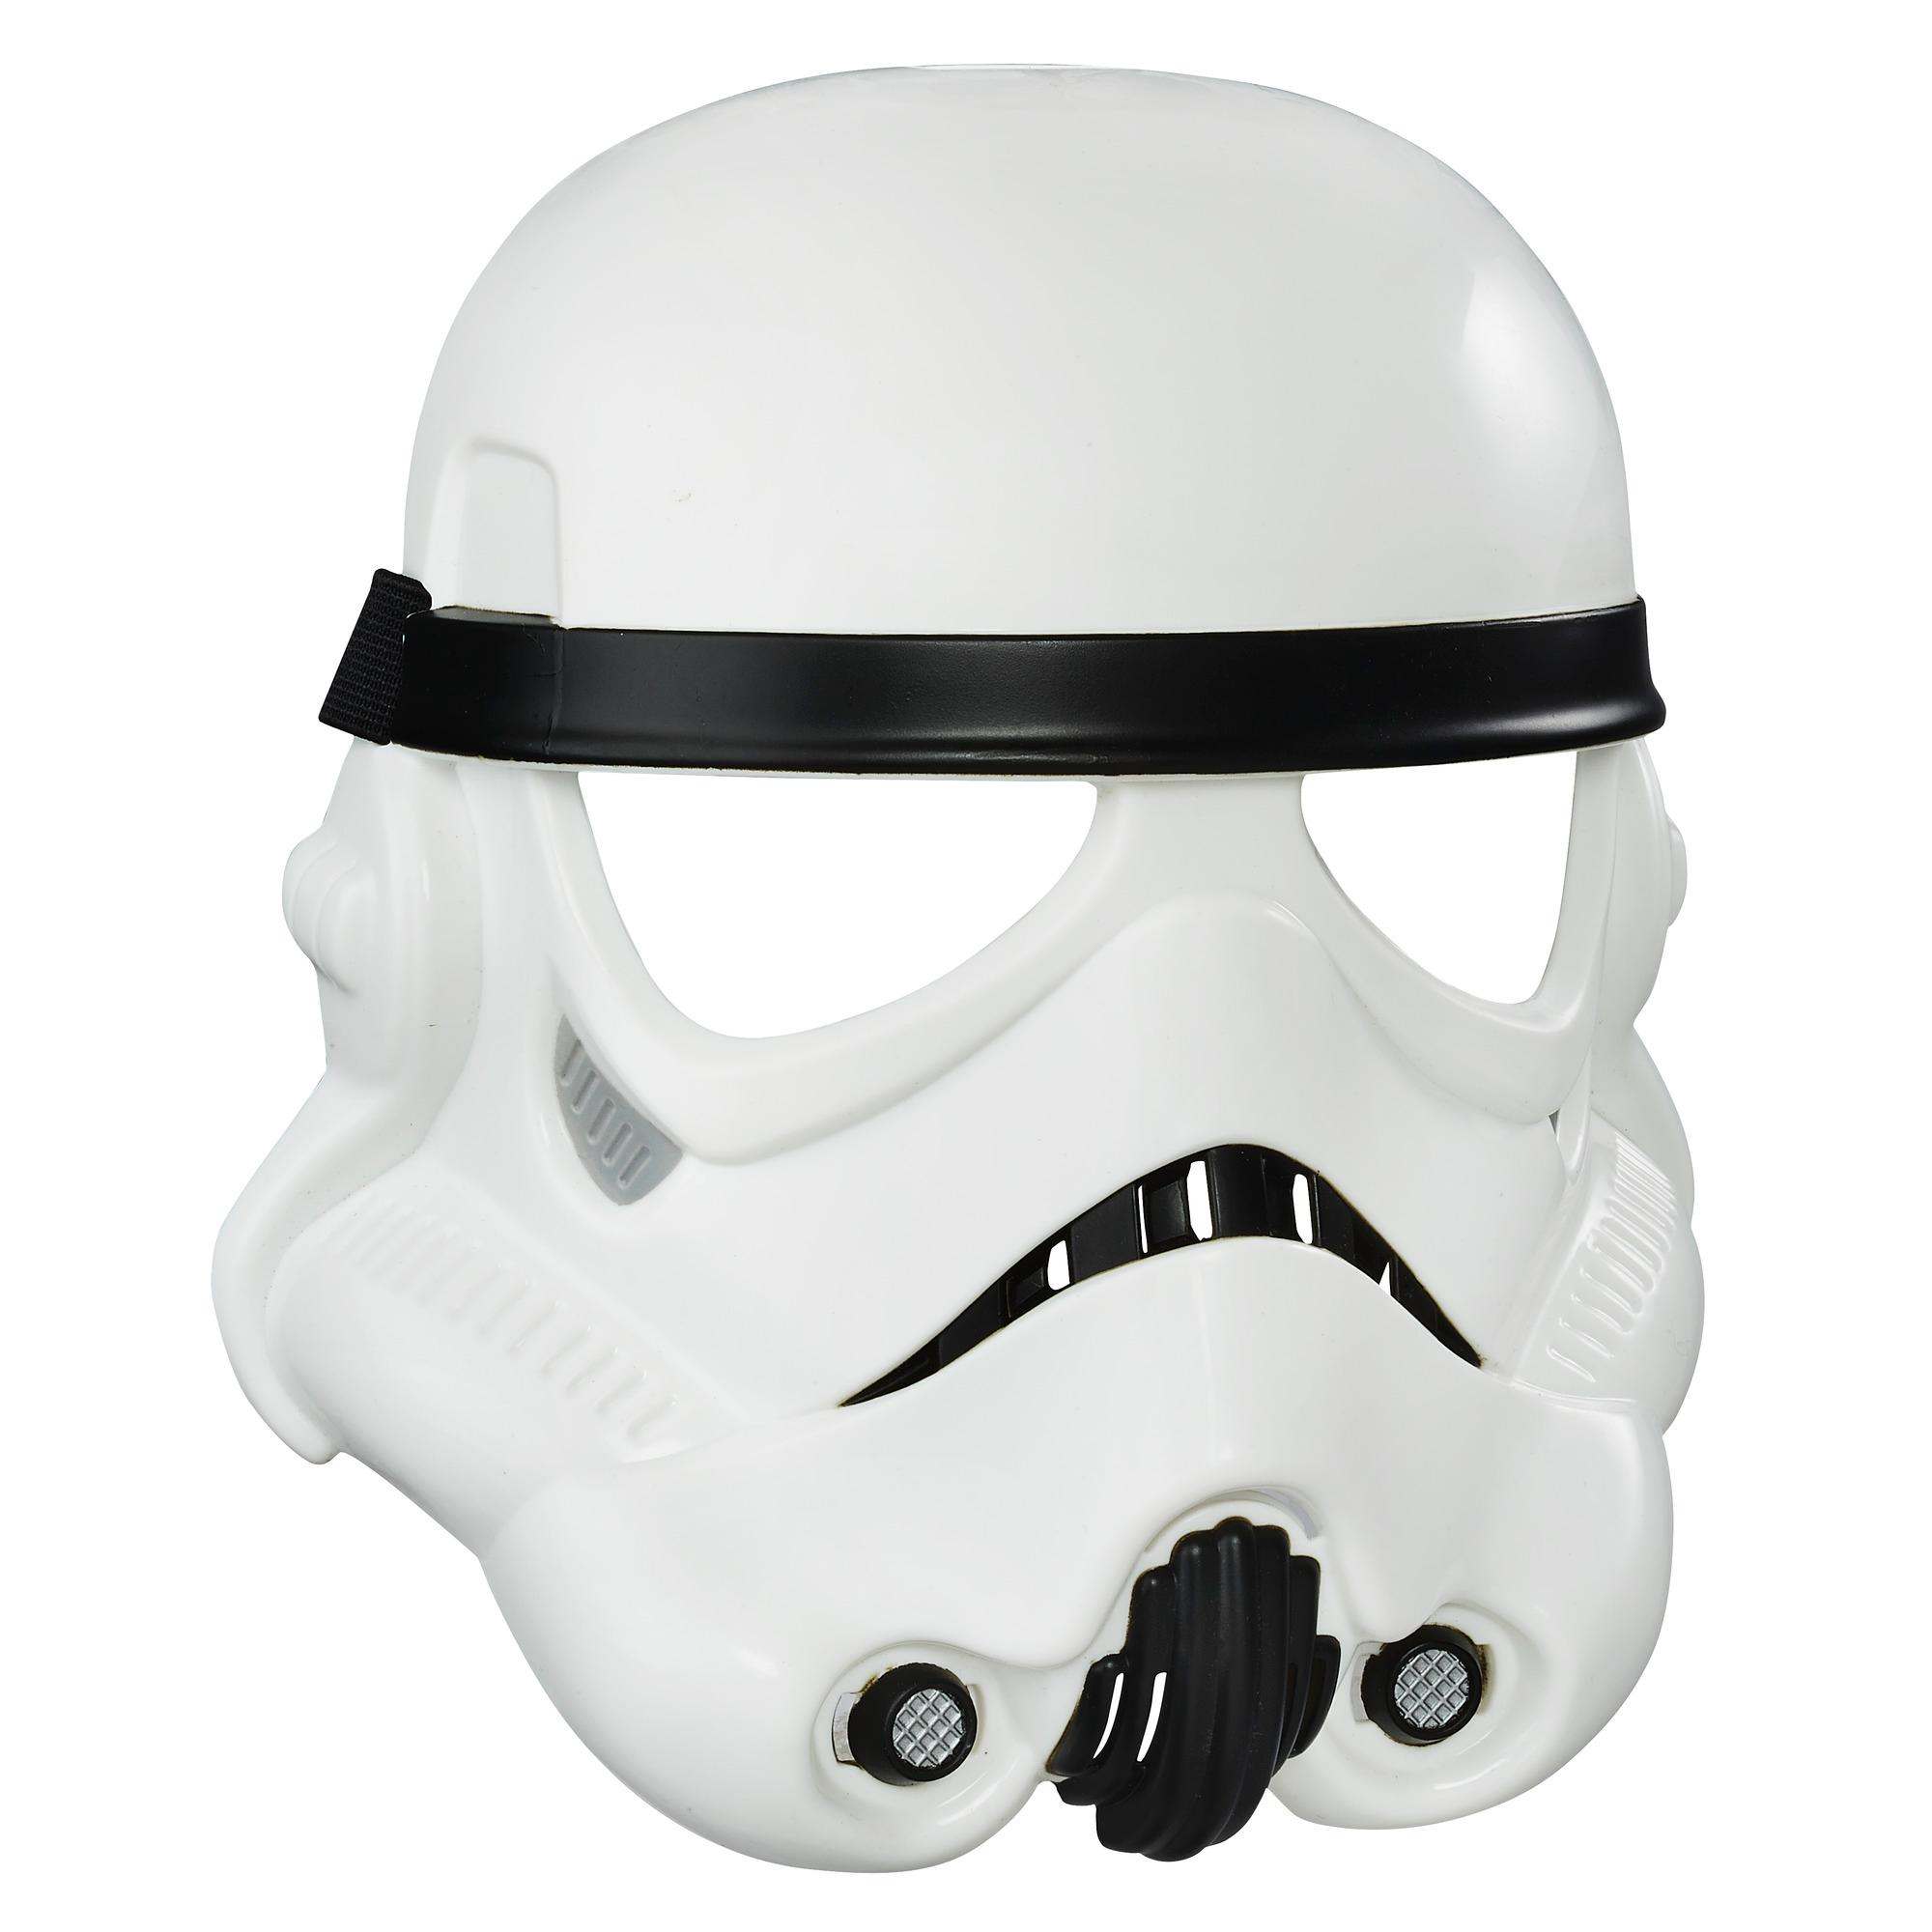 Star Wars Rogue One Imperial Stormtrooper Mask